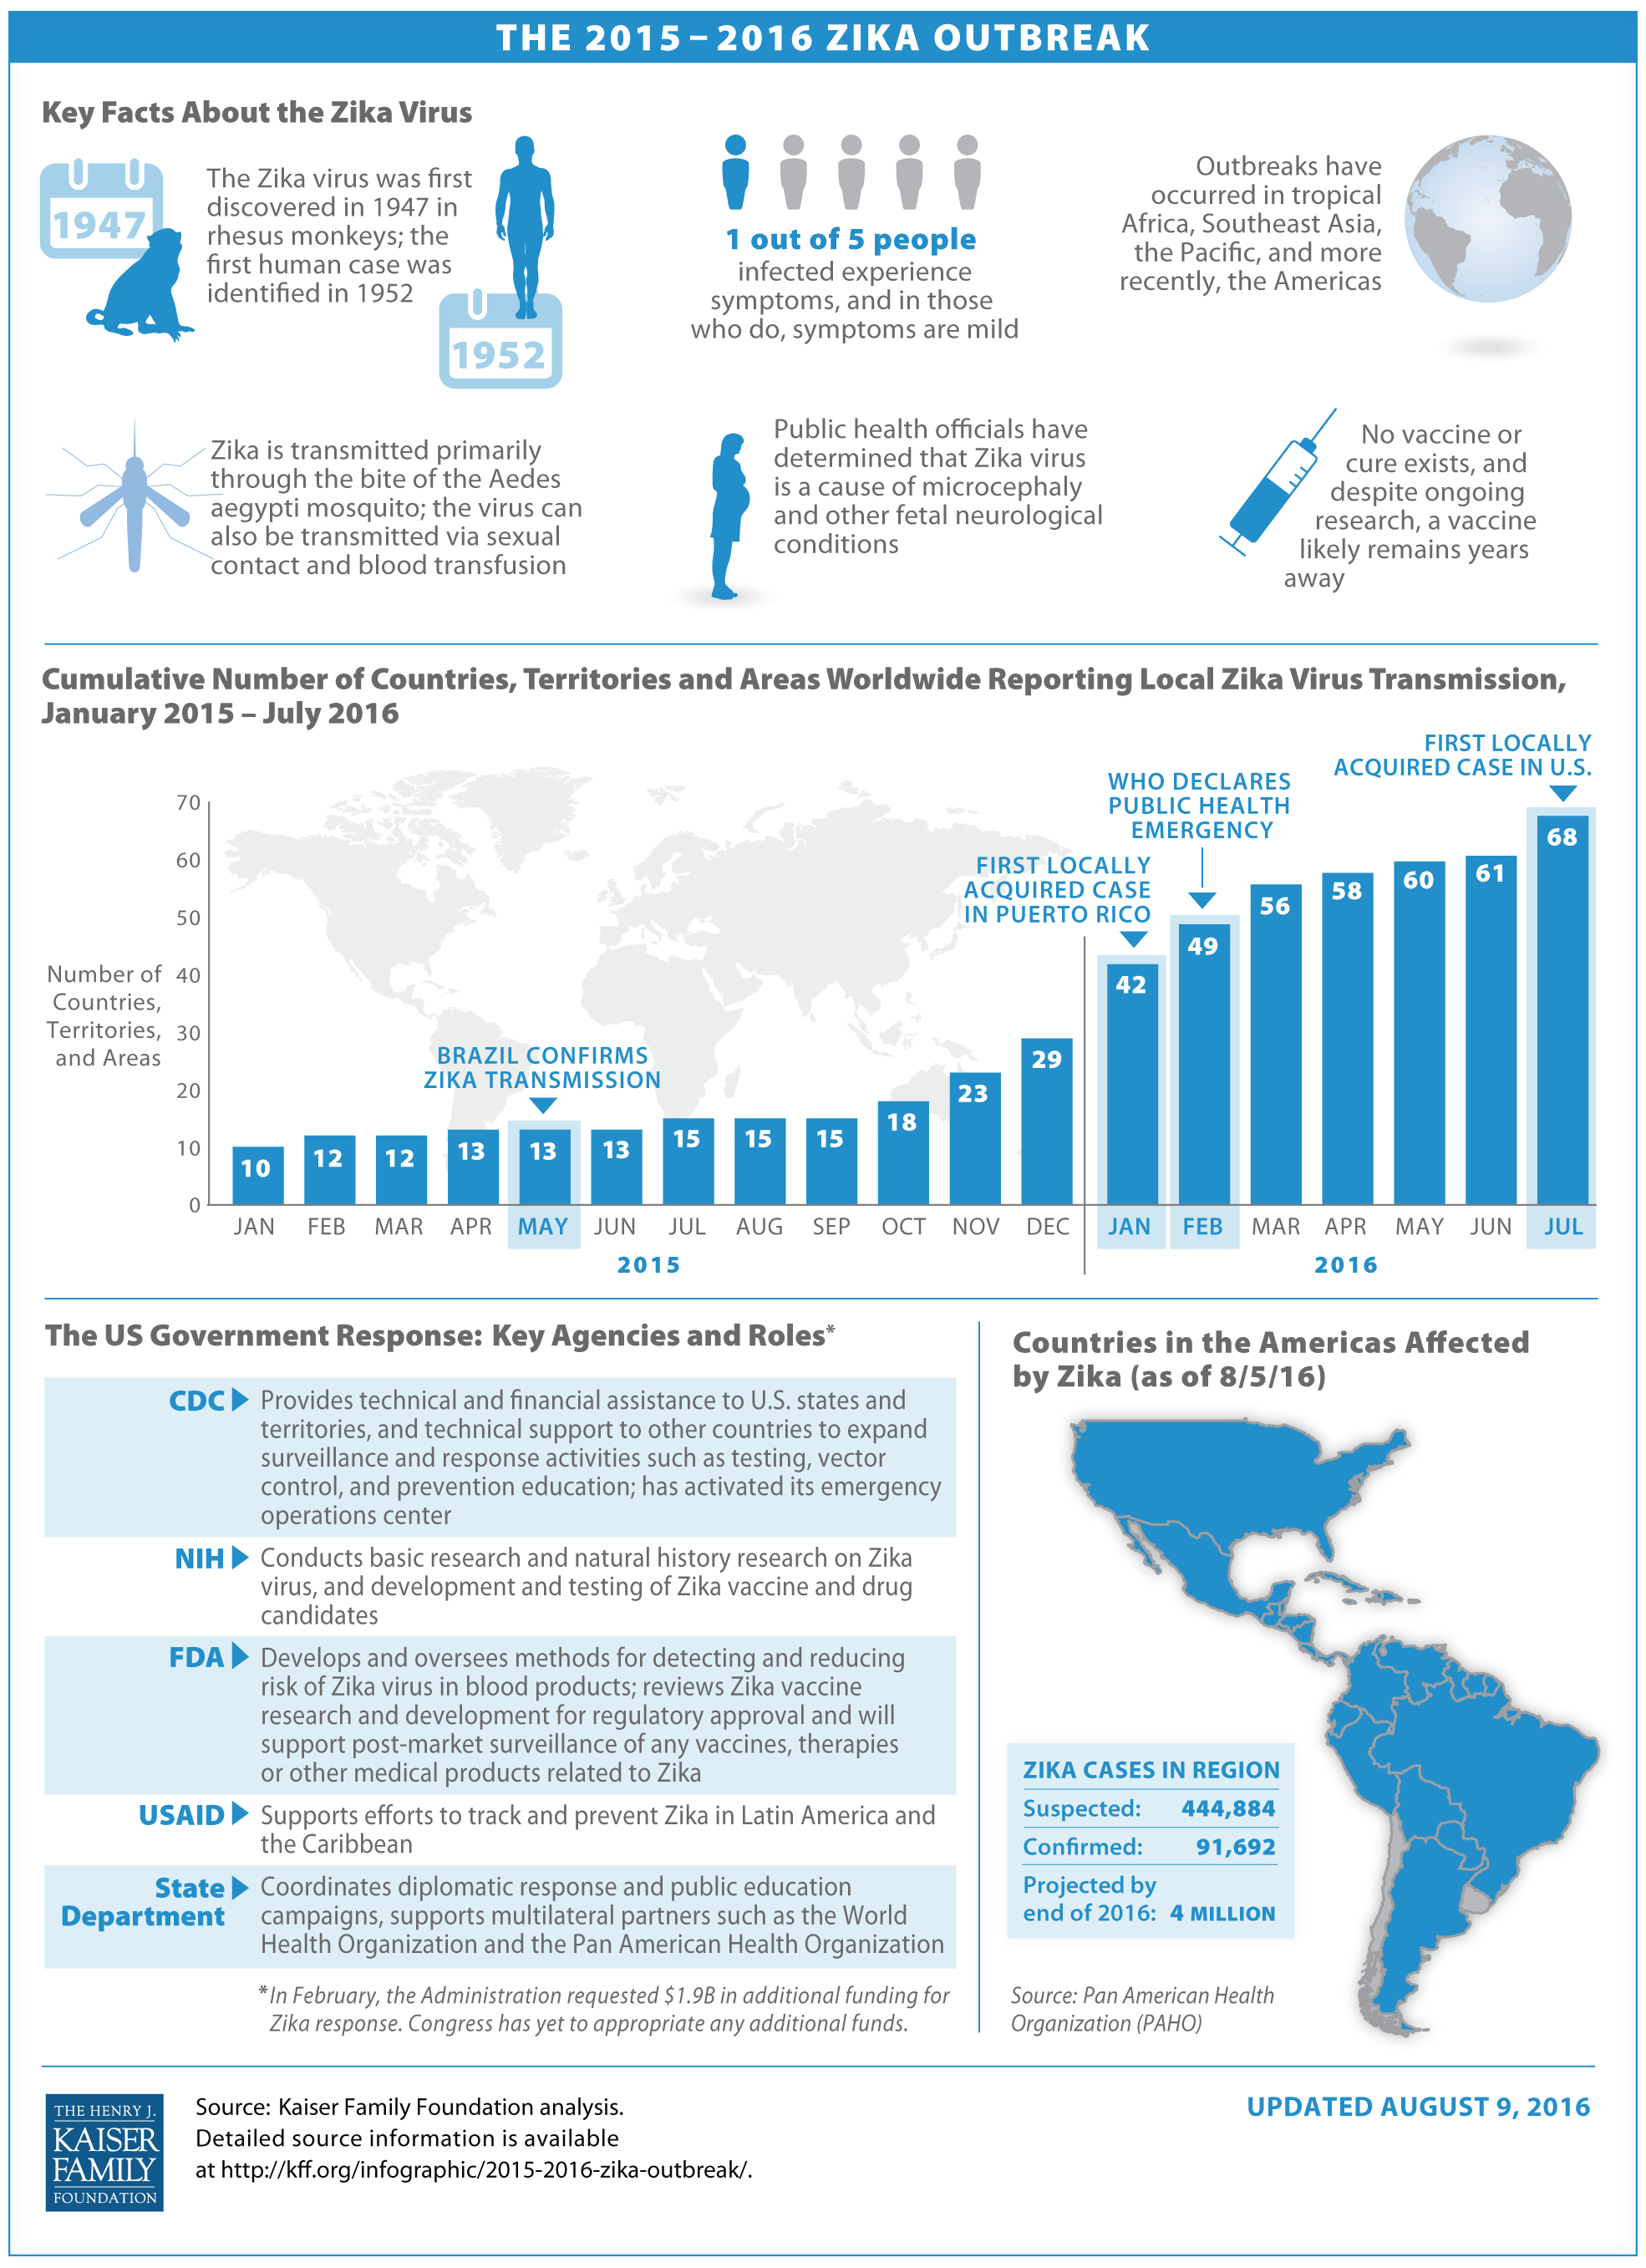 The 2015-2016 Zika Outbreak Infographic Updated August 11 2016